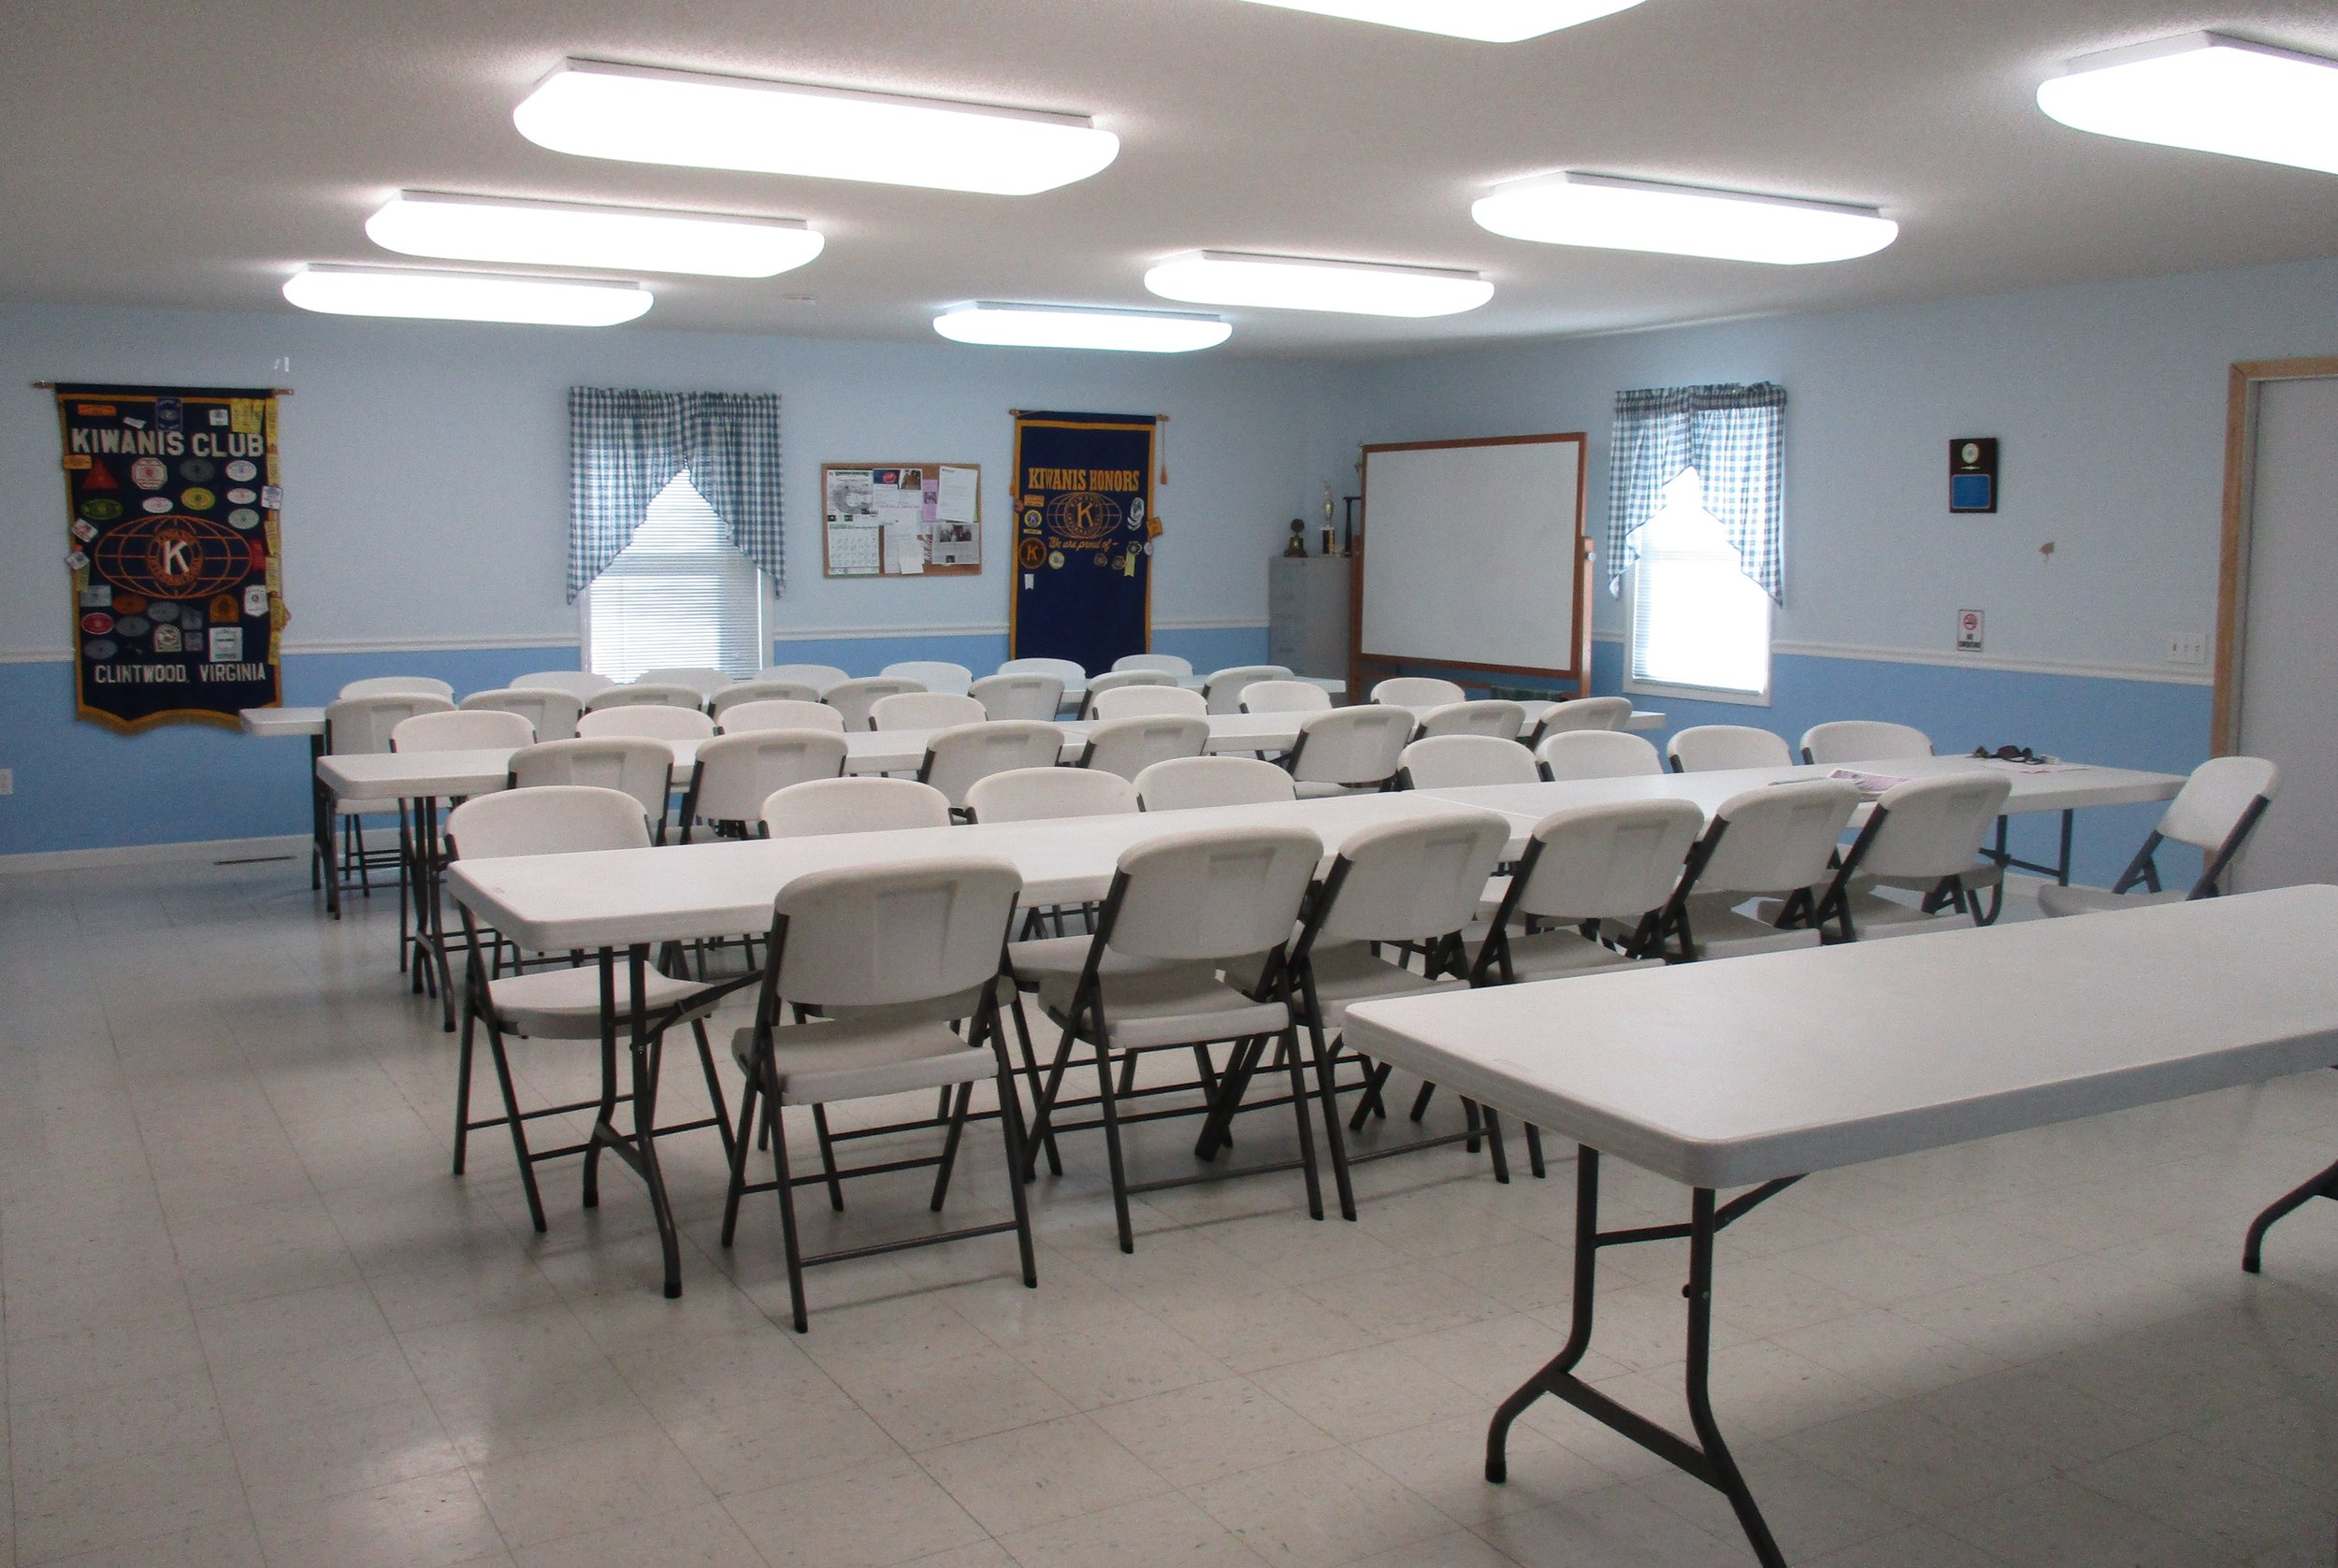 Kiwanis Bldg Meeting Area.jpg